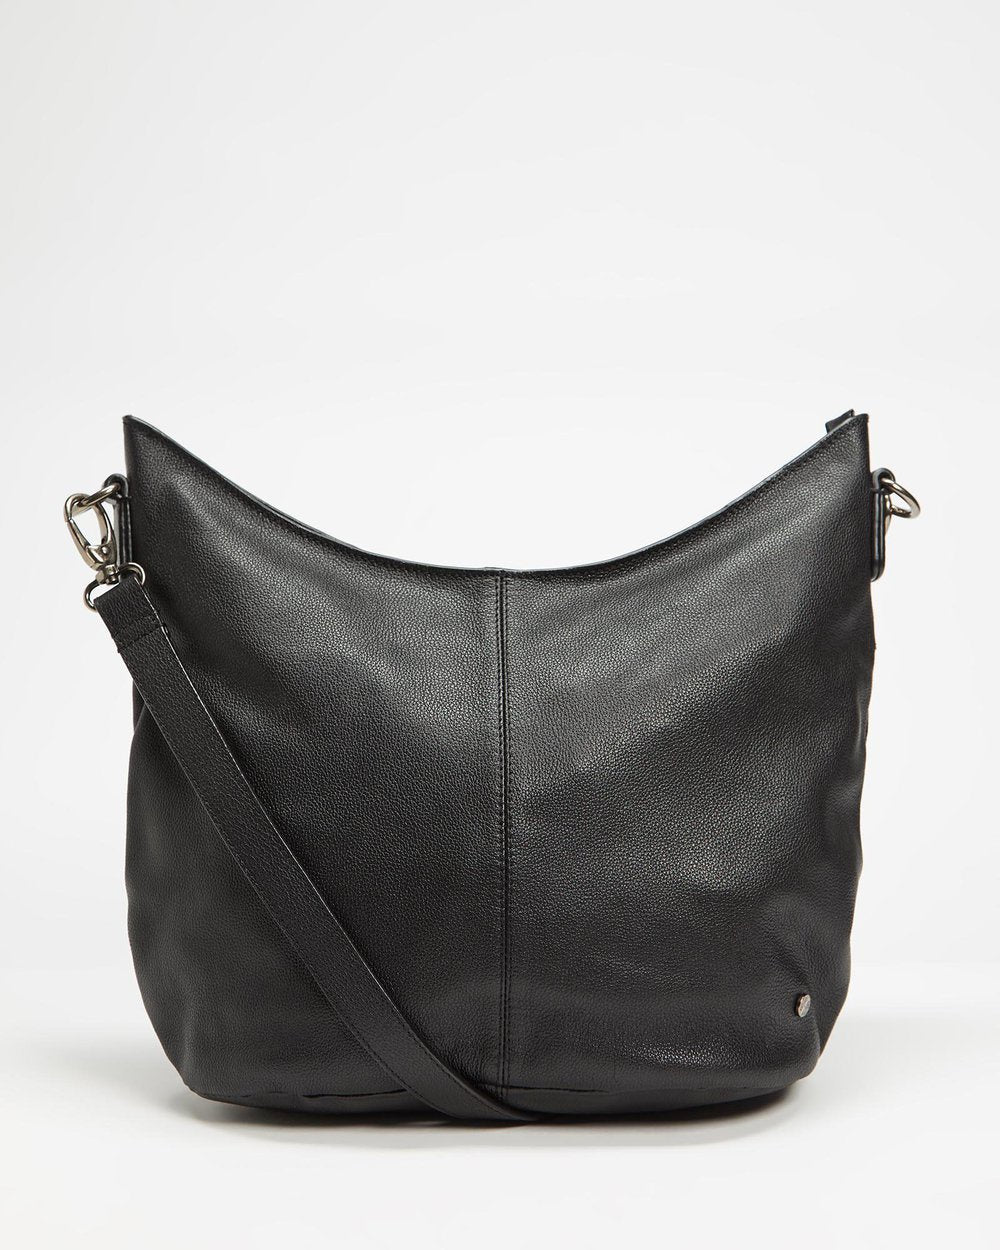 Bag - Frankie - Black Leather